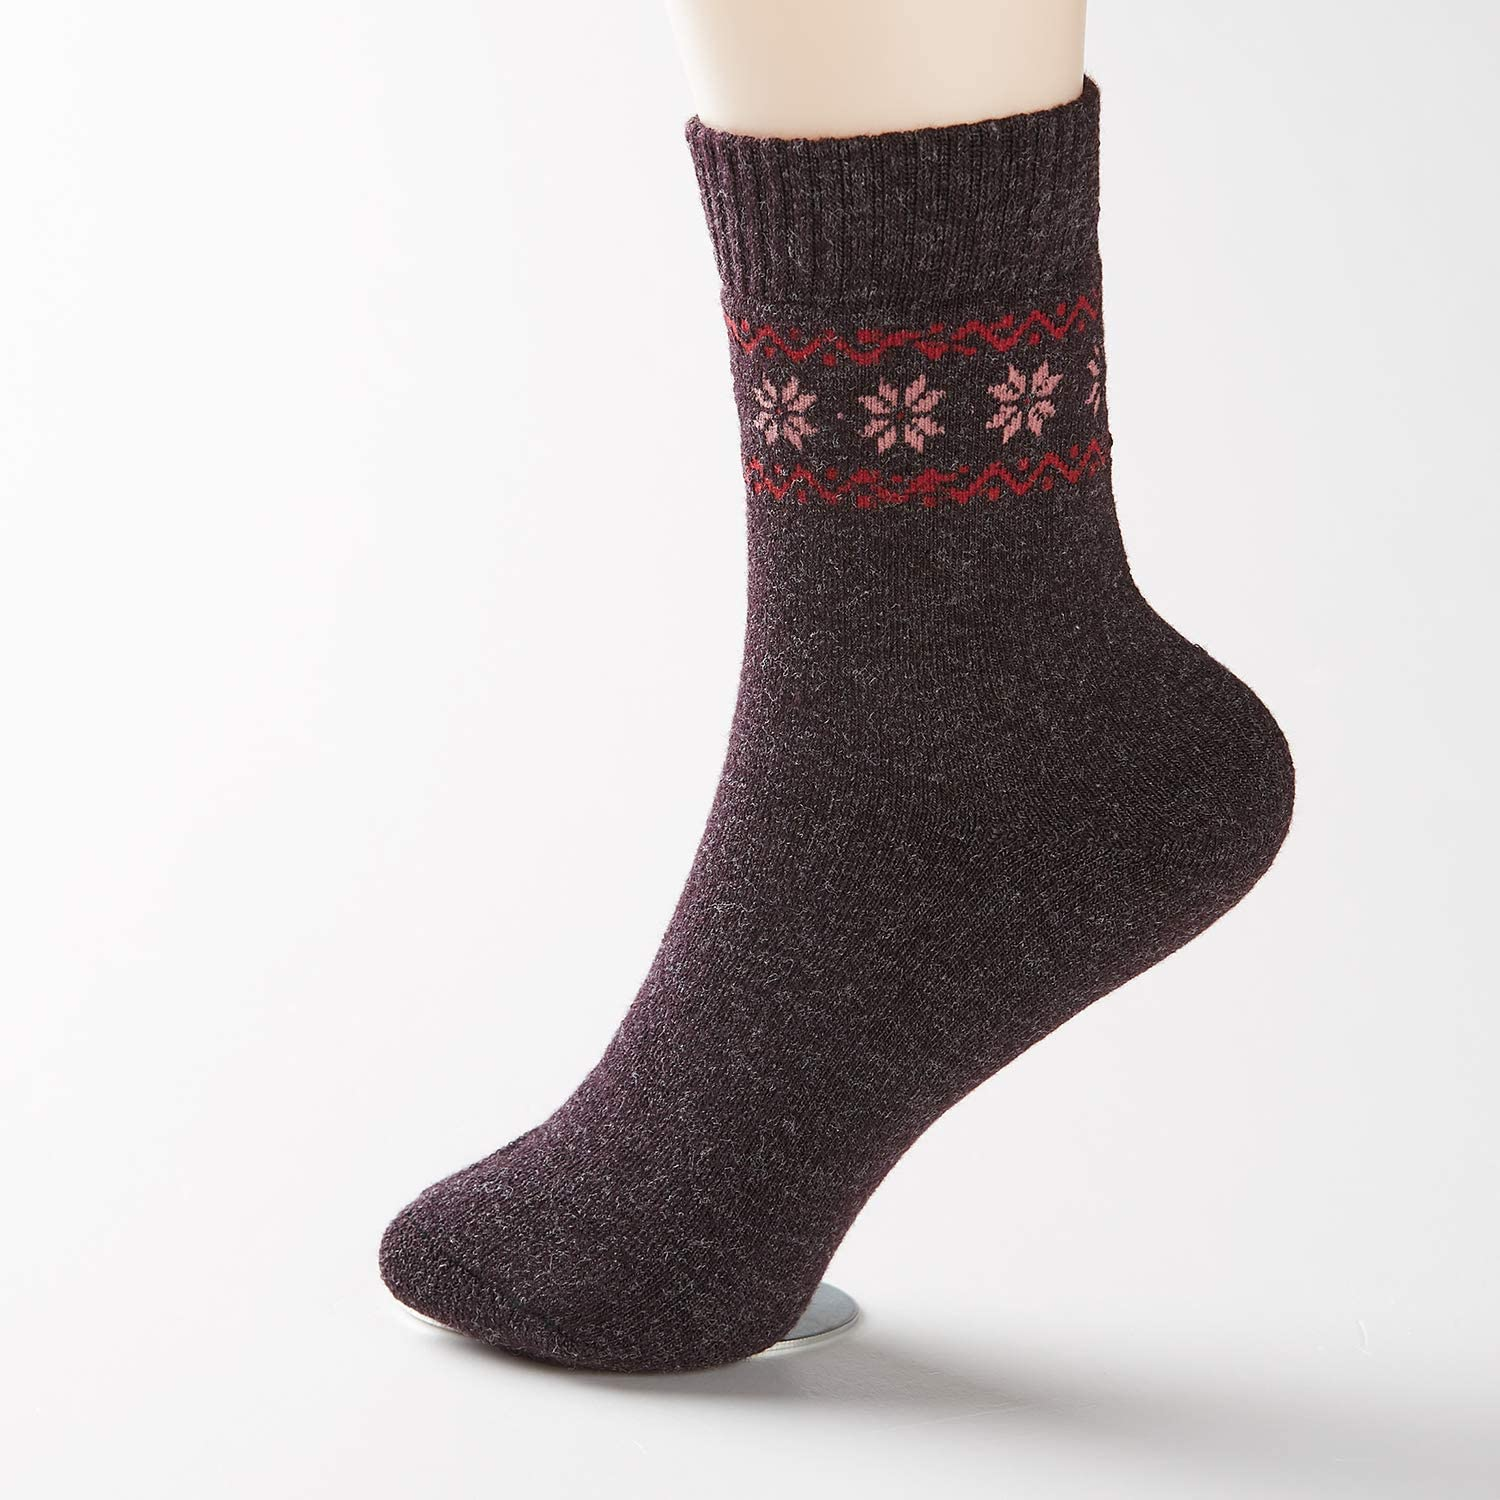 Pack of 4 Winter Warm Wool Socks Hiking Socks Knit Crew Socks for Women Soft and Comfortable: Clothing